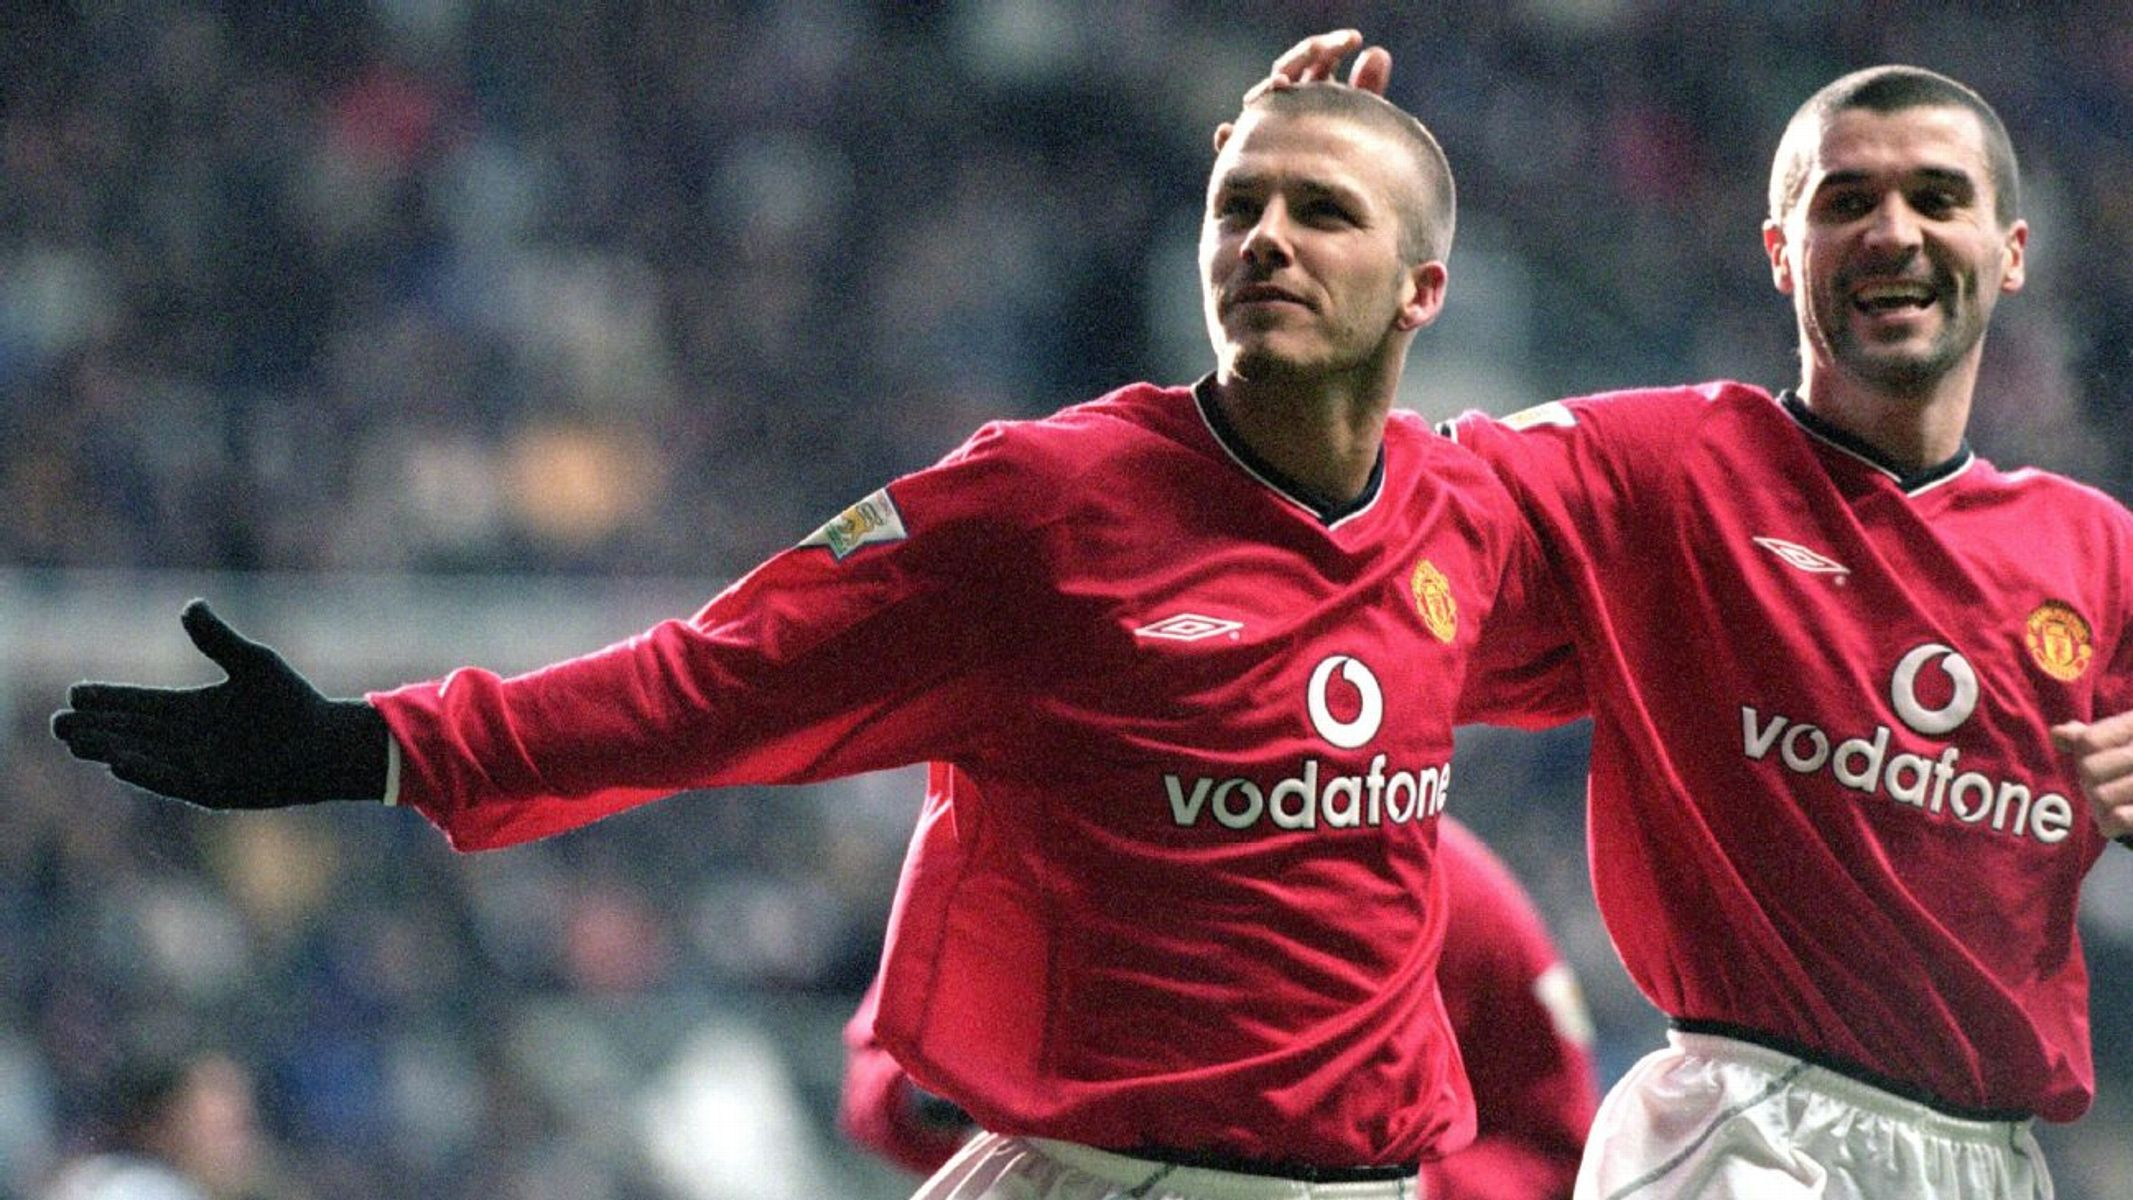 Coronavirus lockdown: Beckham shaves his head (again); Ronaldo gets a trim